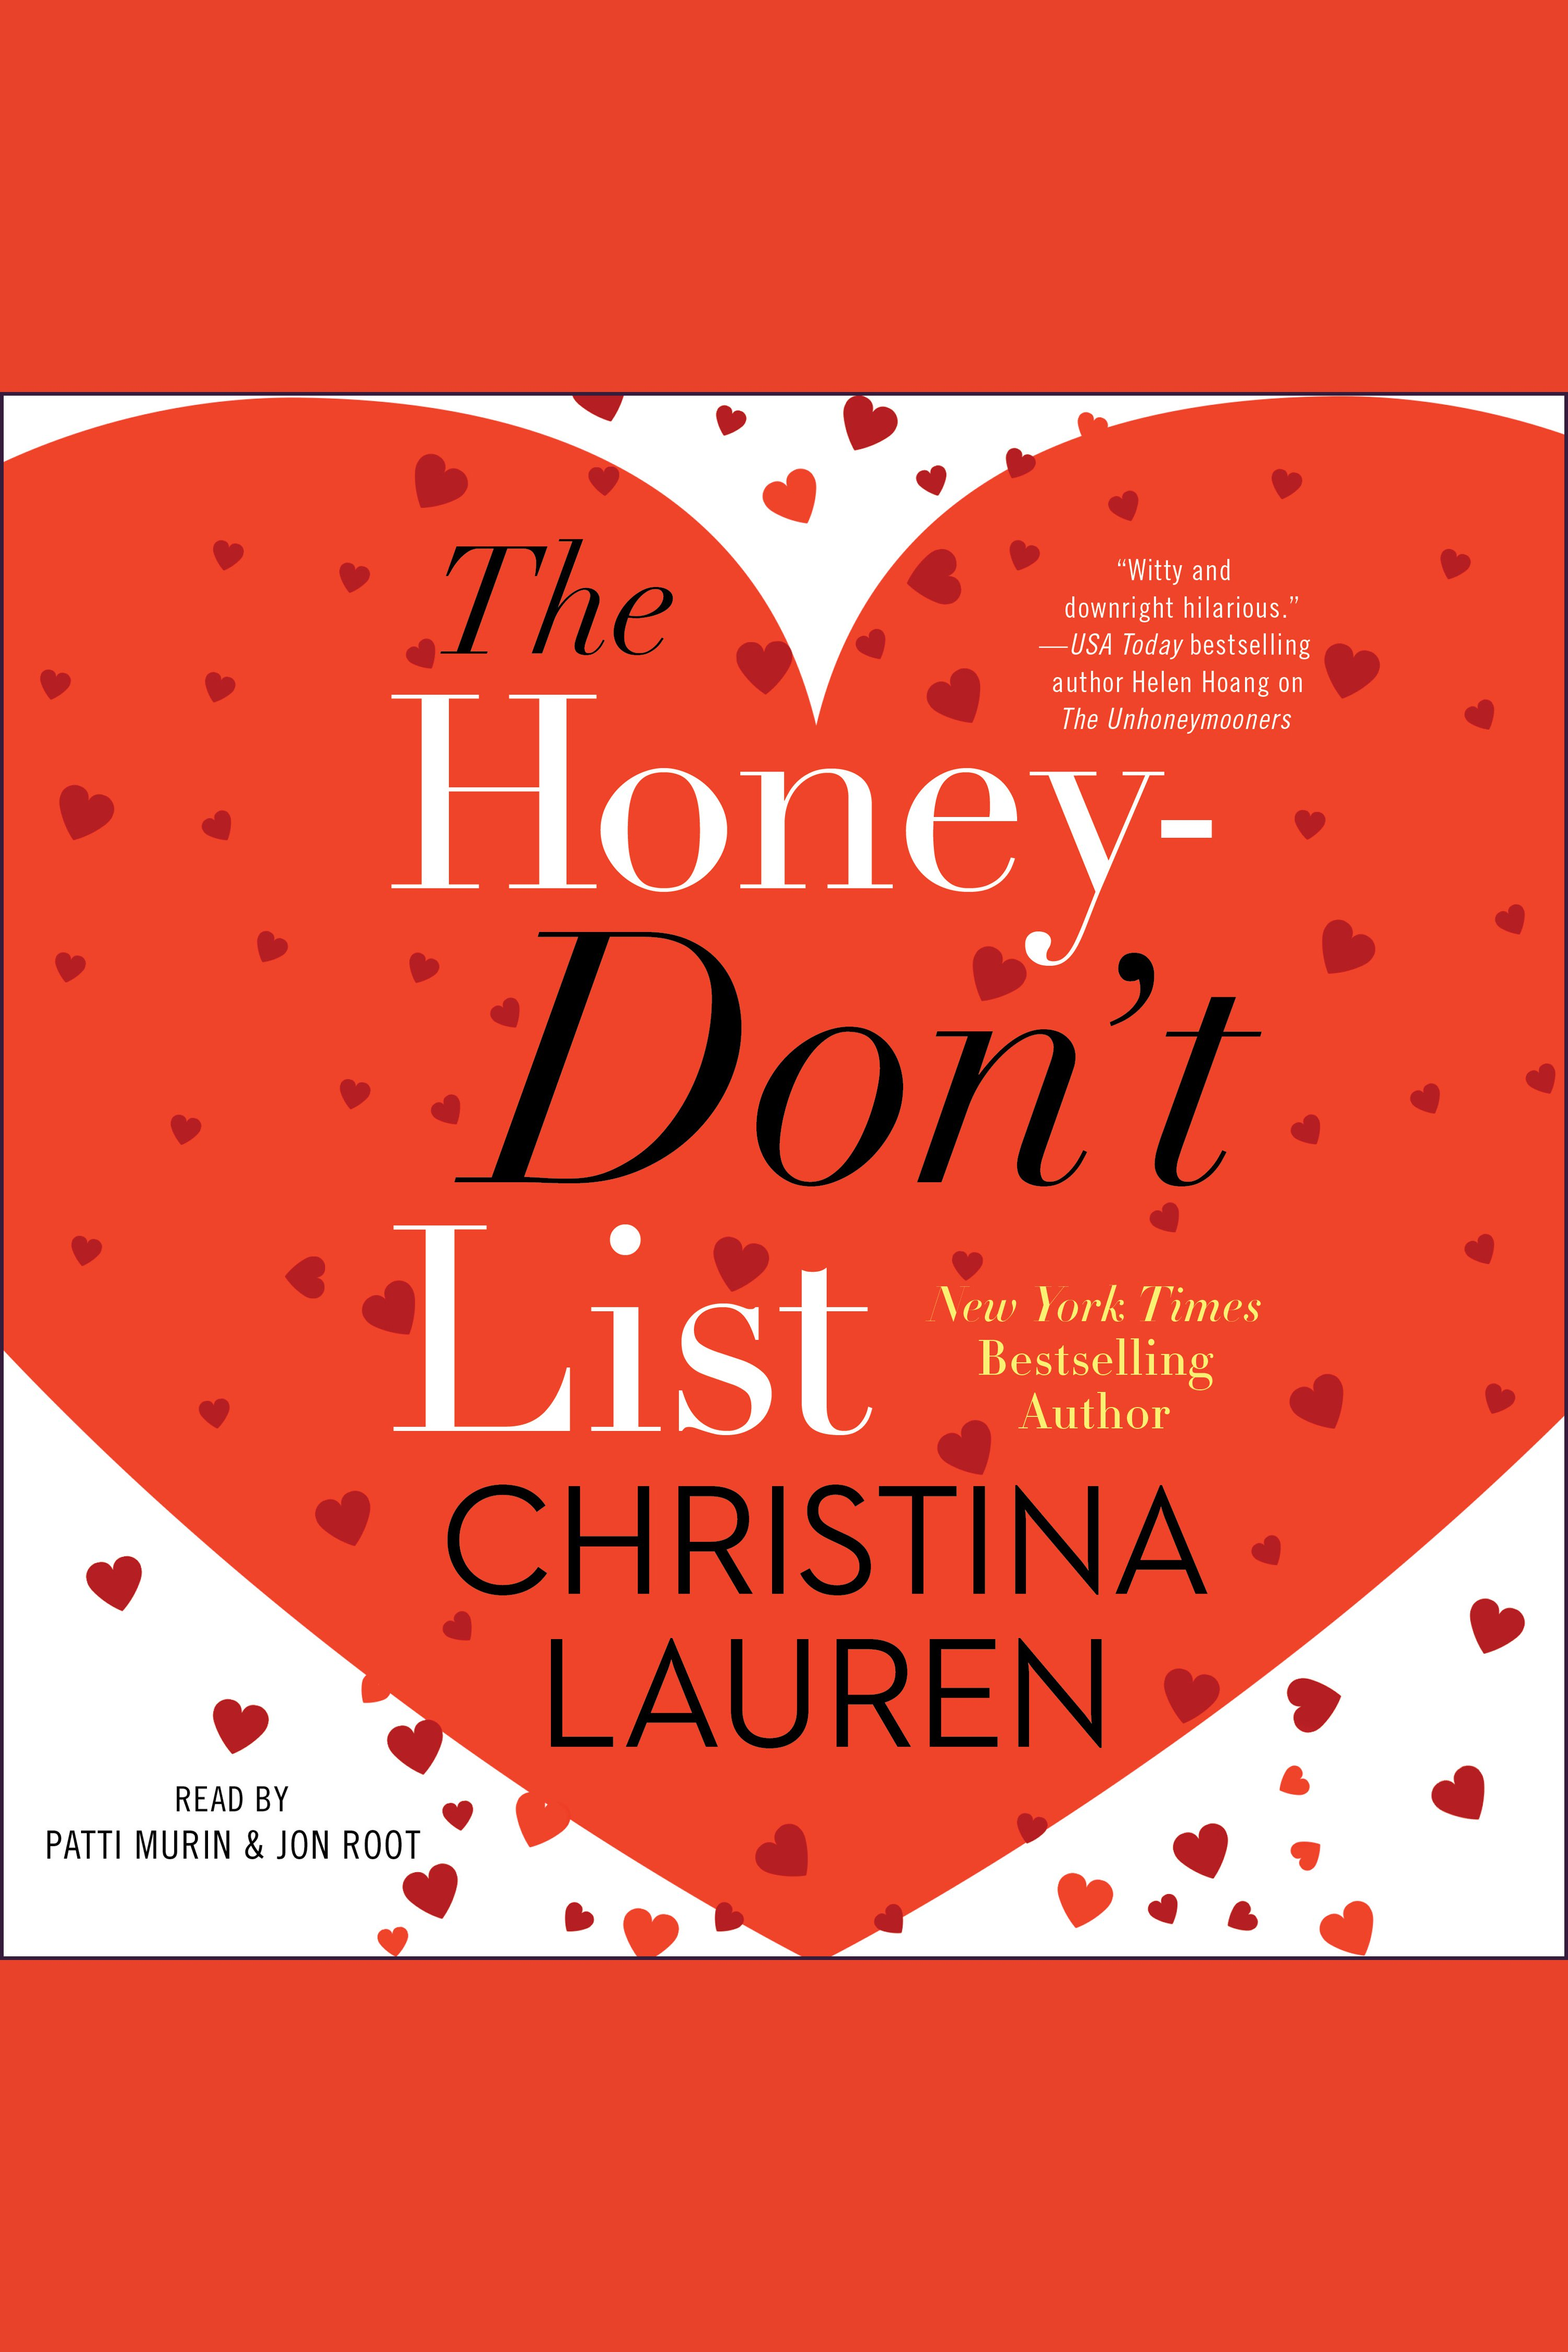 The honey-don't list cover image